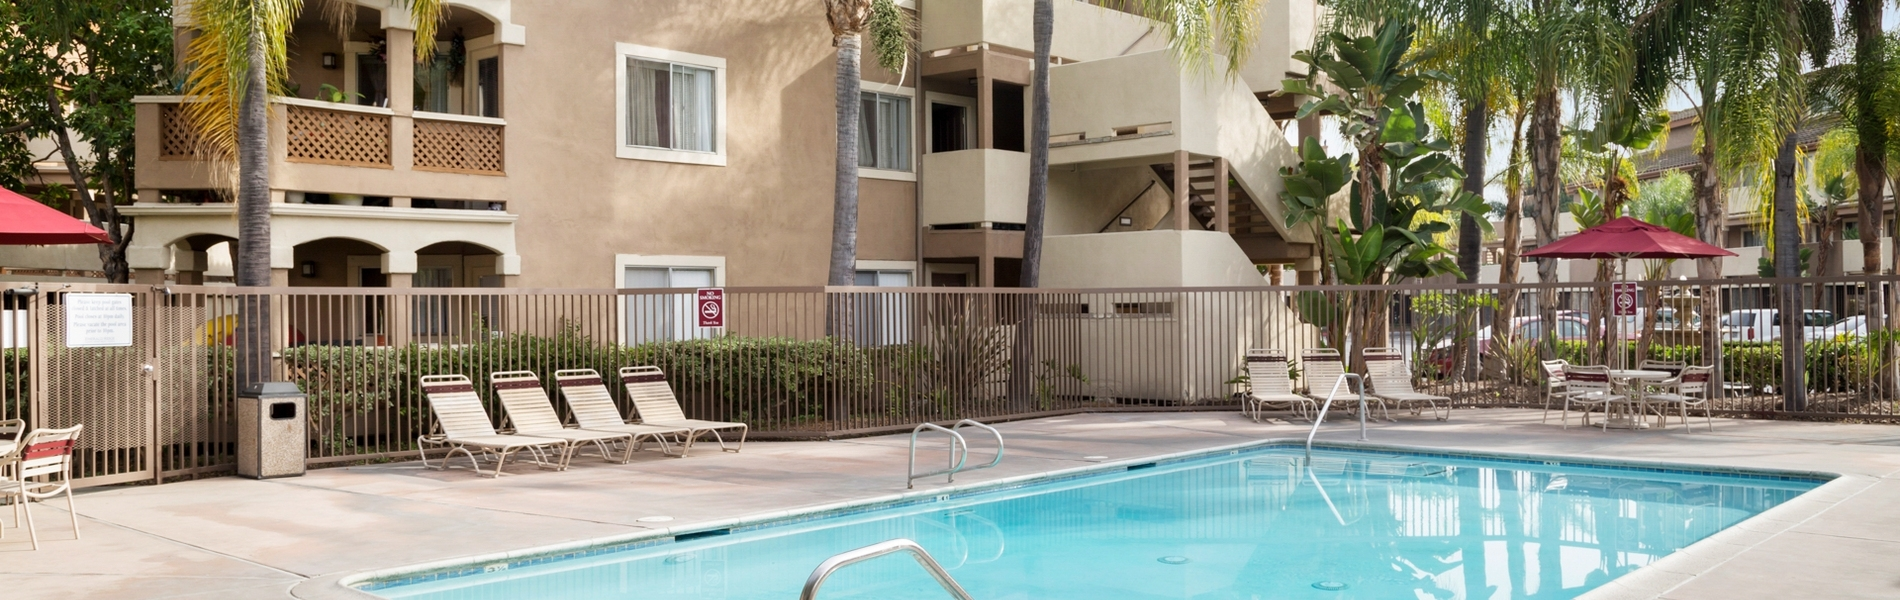 Bold Inspiration Apartments For Rent In Garden Grove Remarkable inside Best Layout For Apartments For Rent Garden Grove Ca Design Ideas